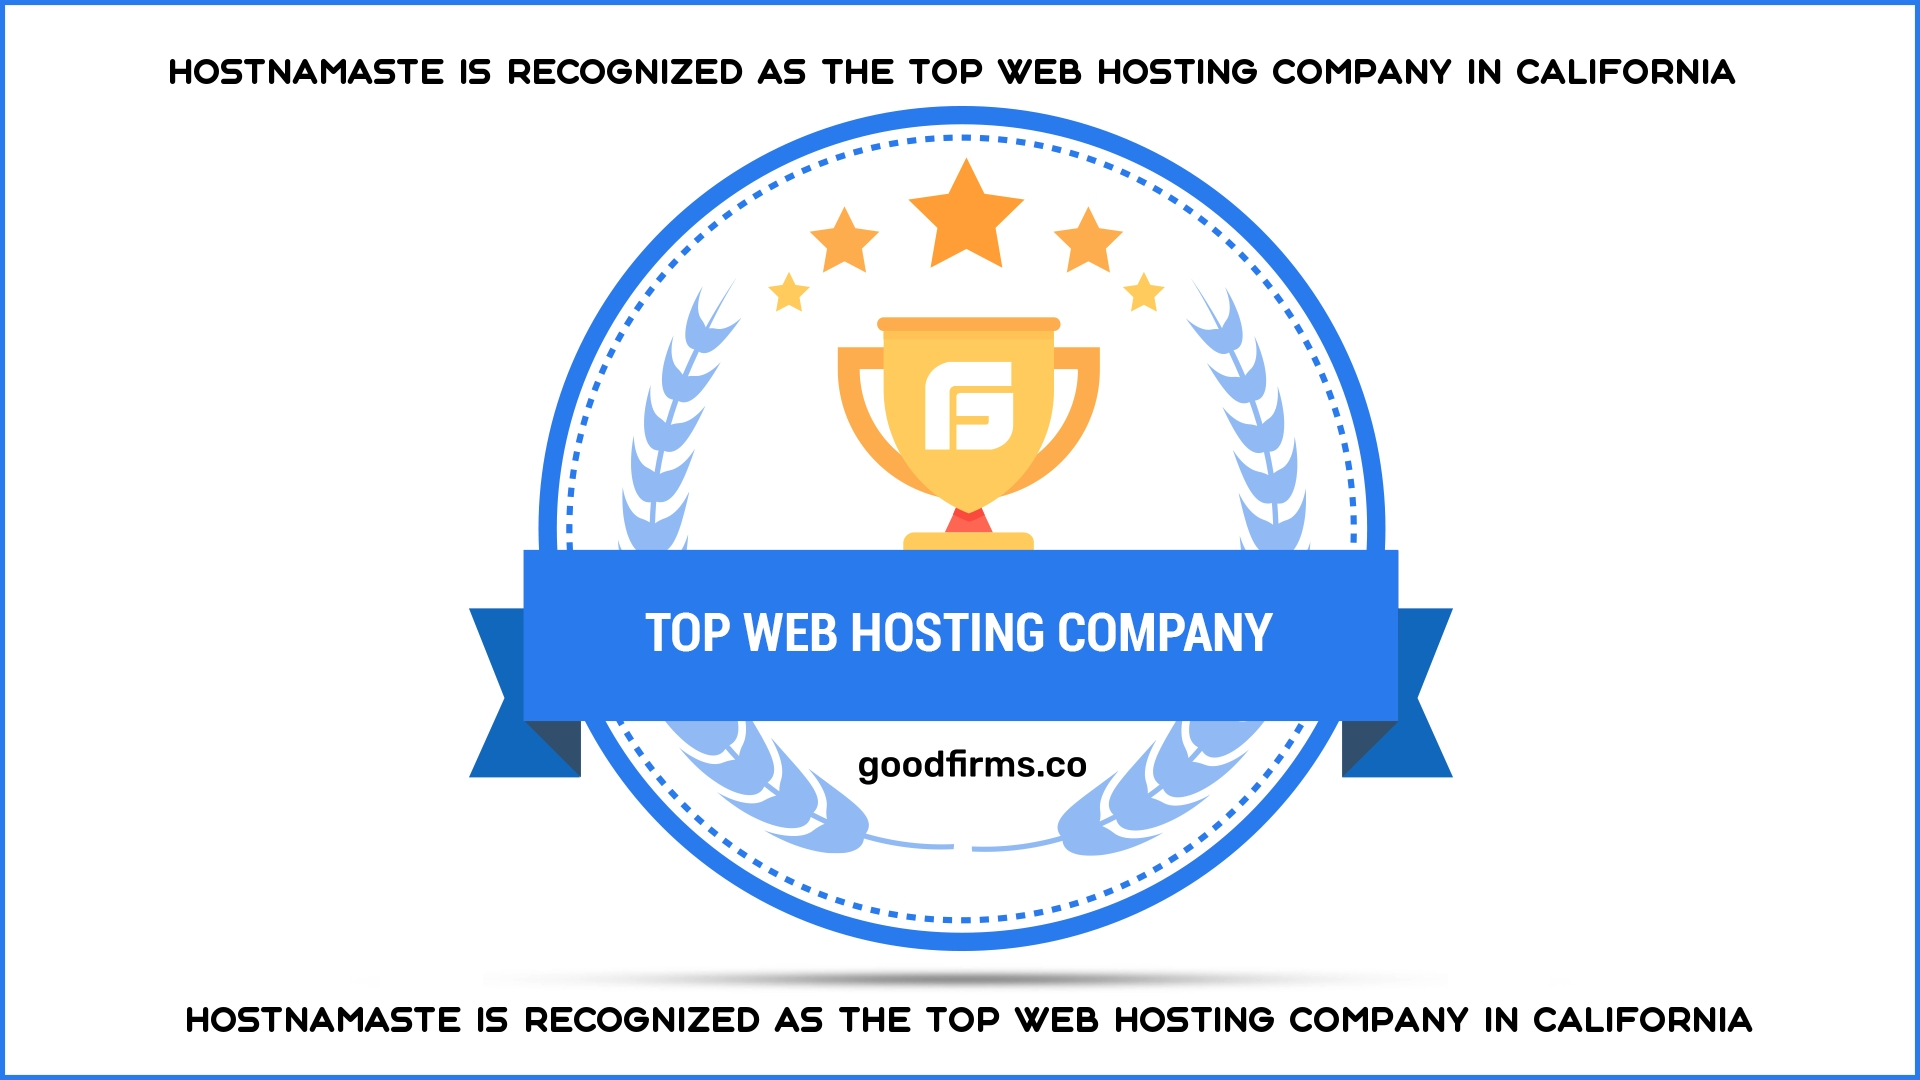 HostNamaste is Recognized As The Top Web Hosting Company in California